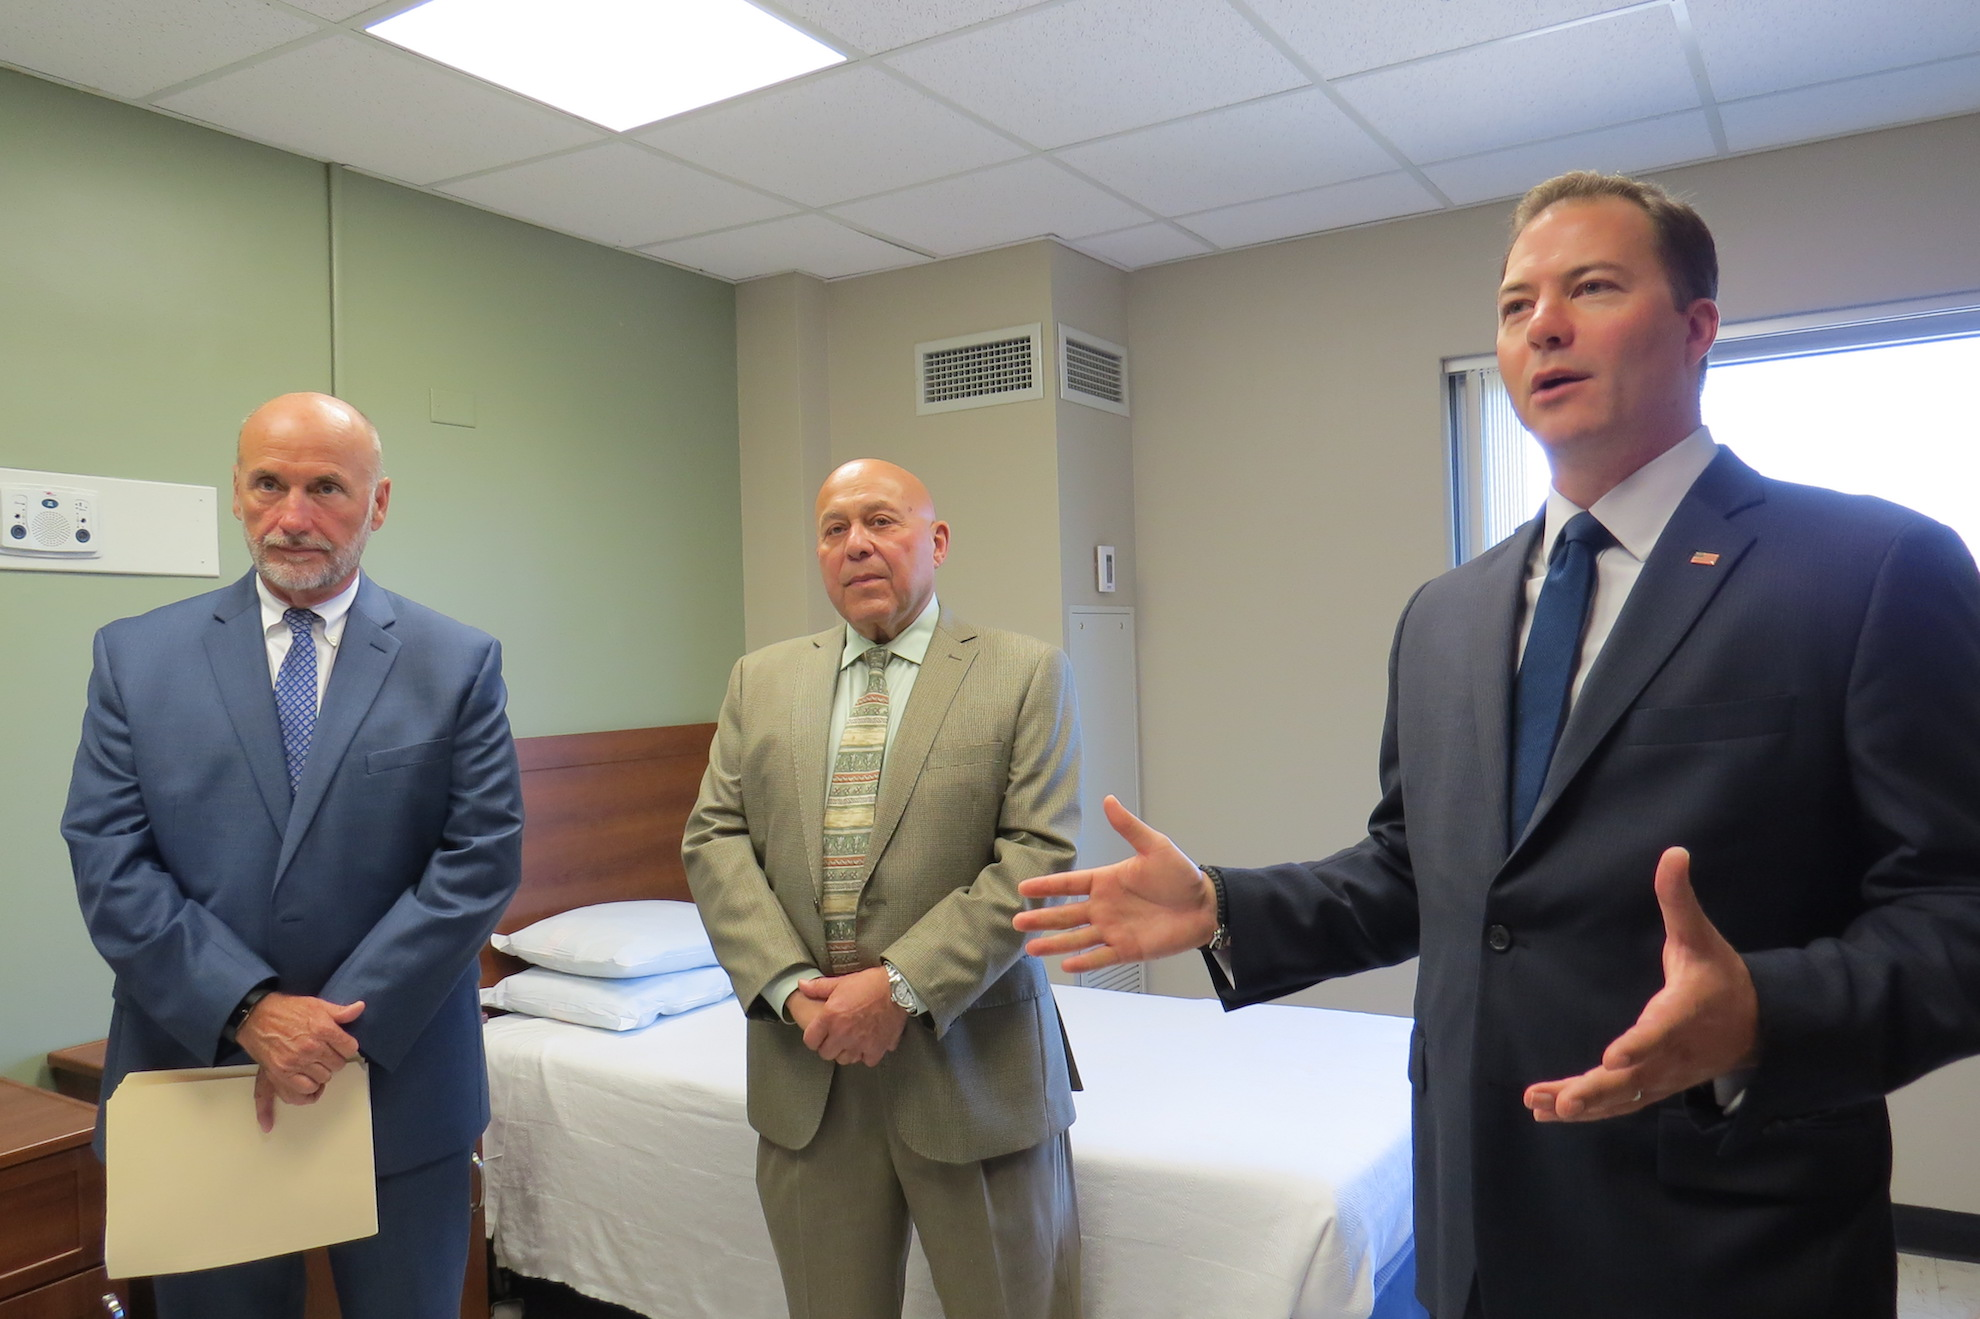 New York State Sen. Robert Ortt addresses the media inside a new Clearview room at Mount St. Mary's Hospital in Lewiston. To his far left are hospital President/CEO Gary C. Tucker and Assemblyman Angelo Morinello.